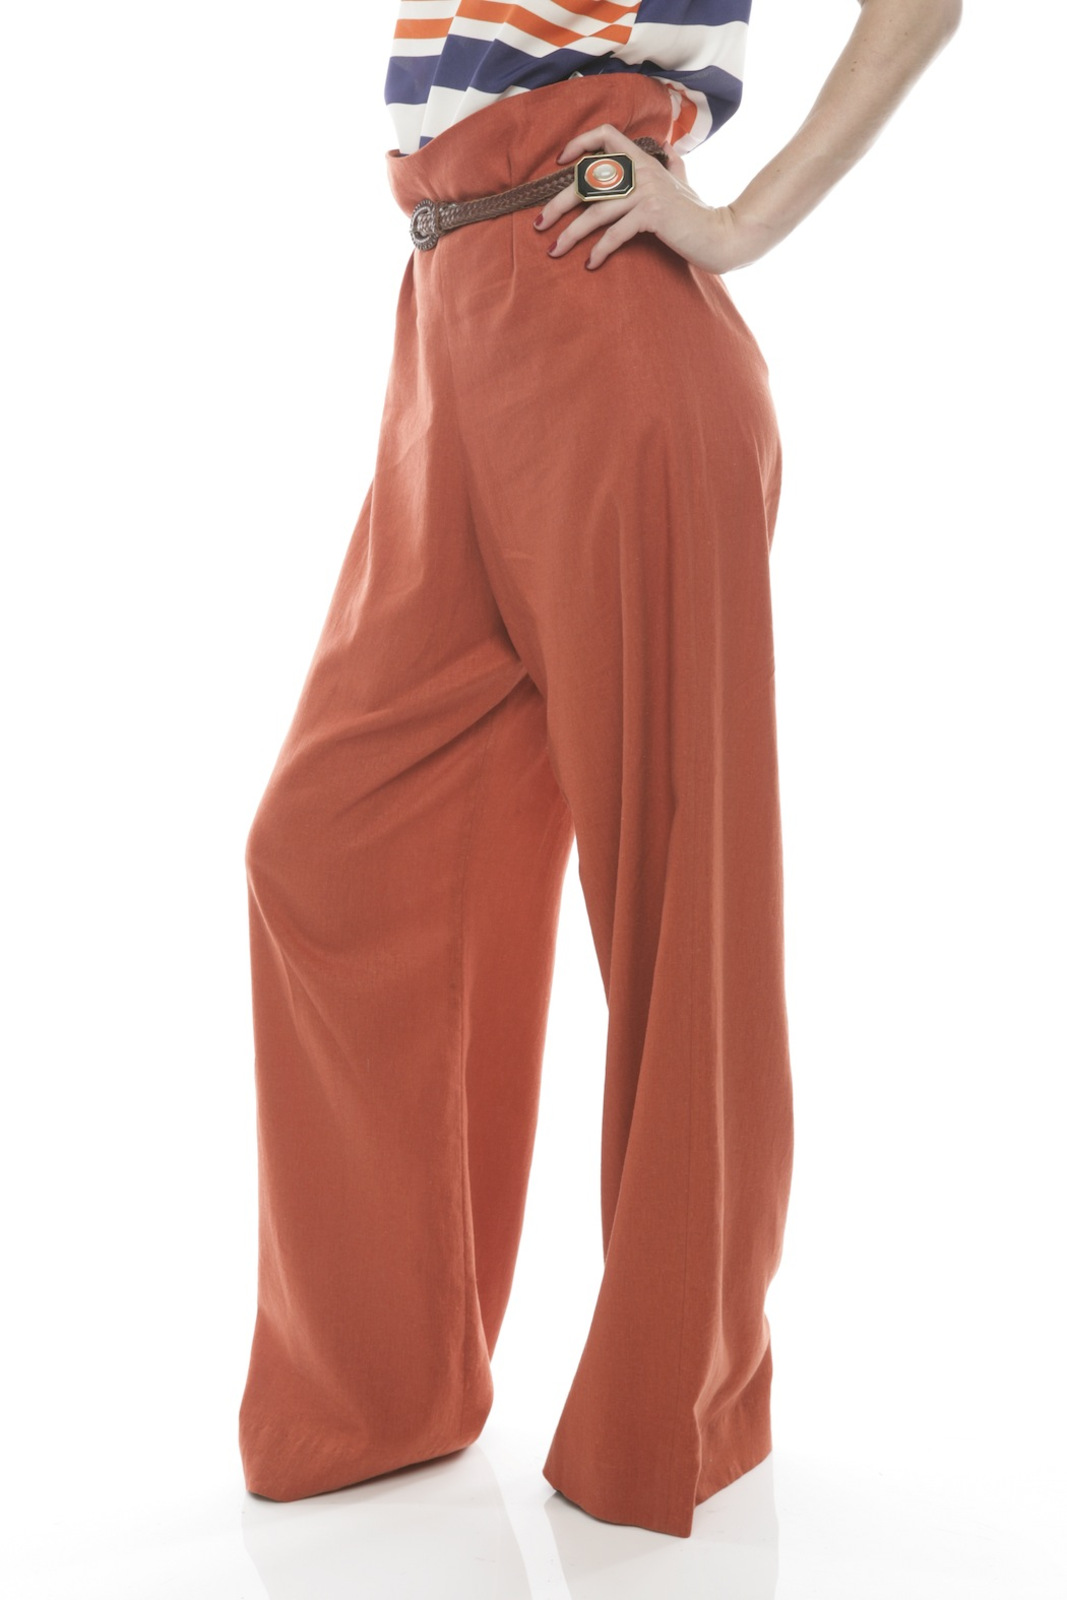 Devon Thomas Collection Wide-Leg Pants - Side Cropped Image